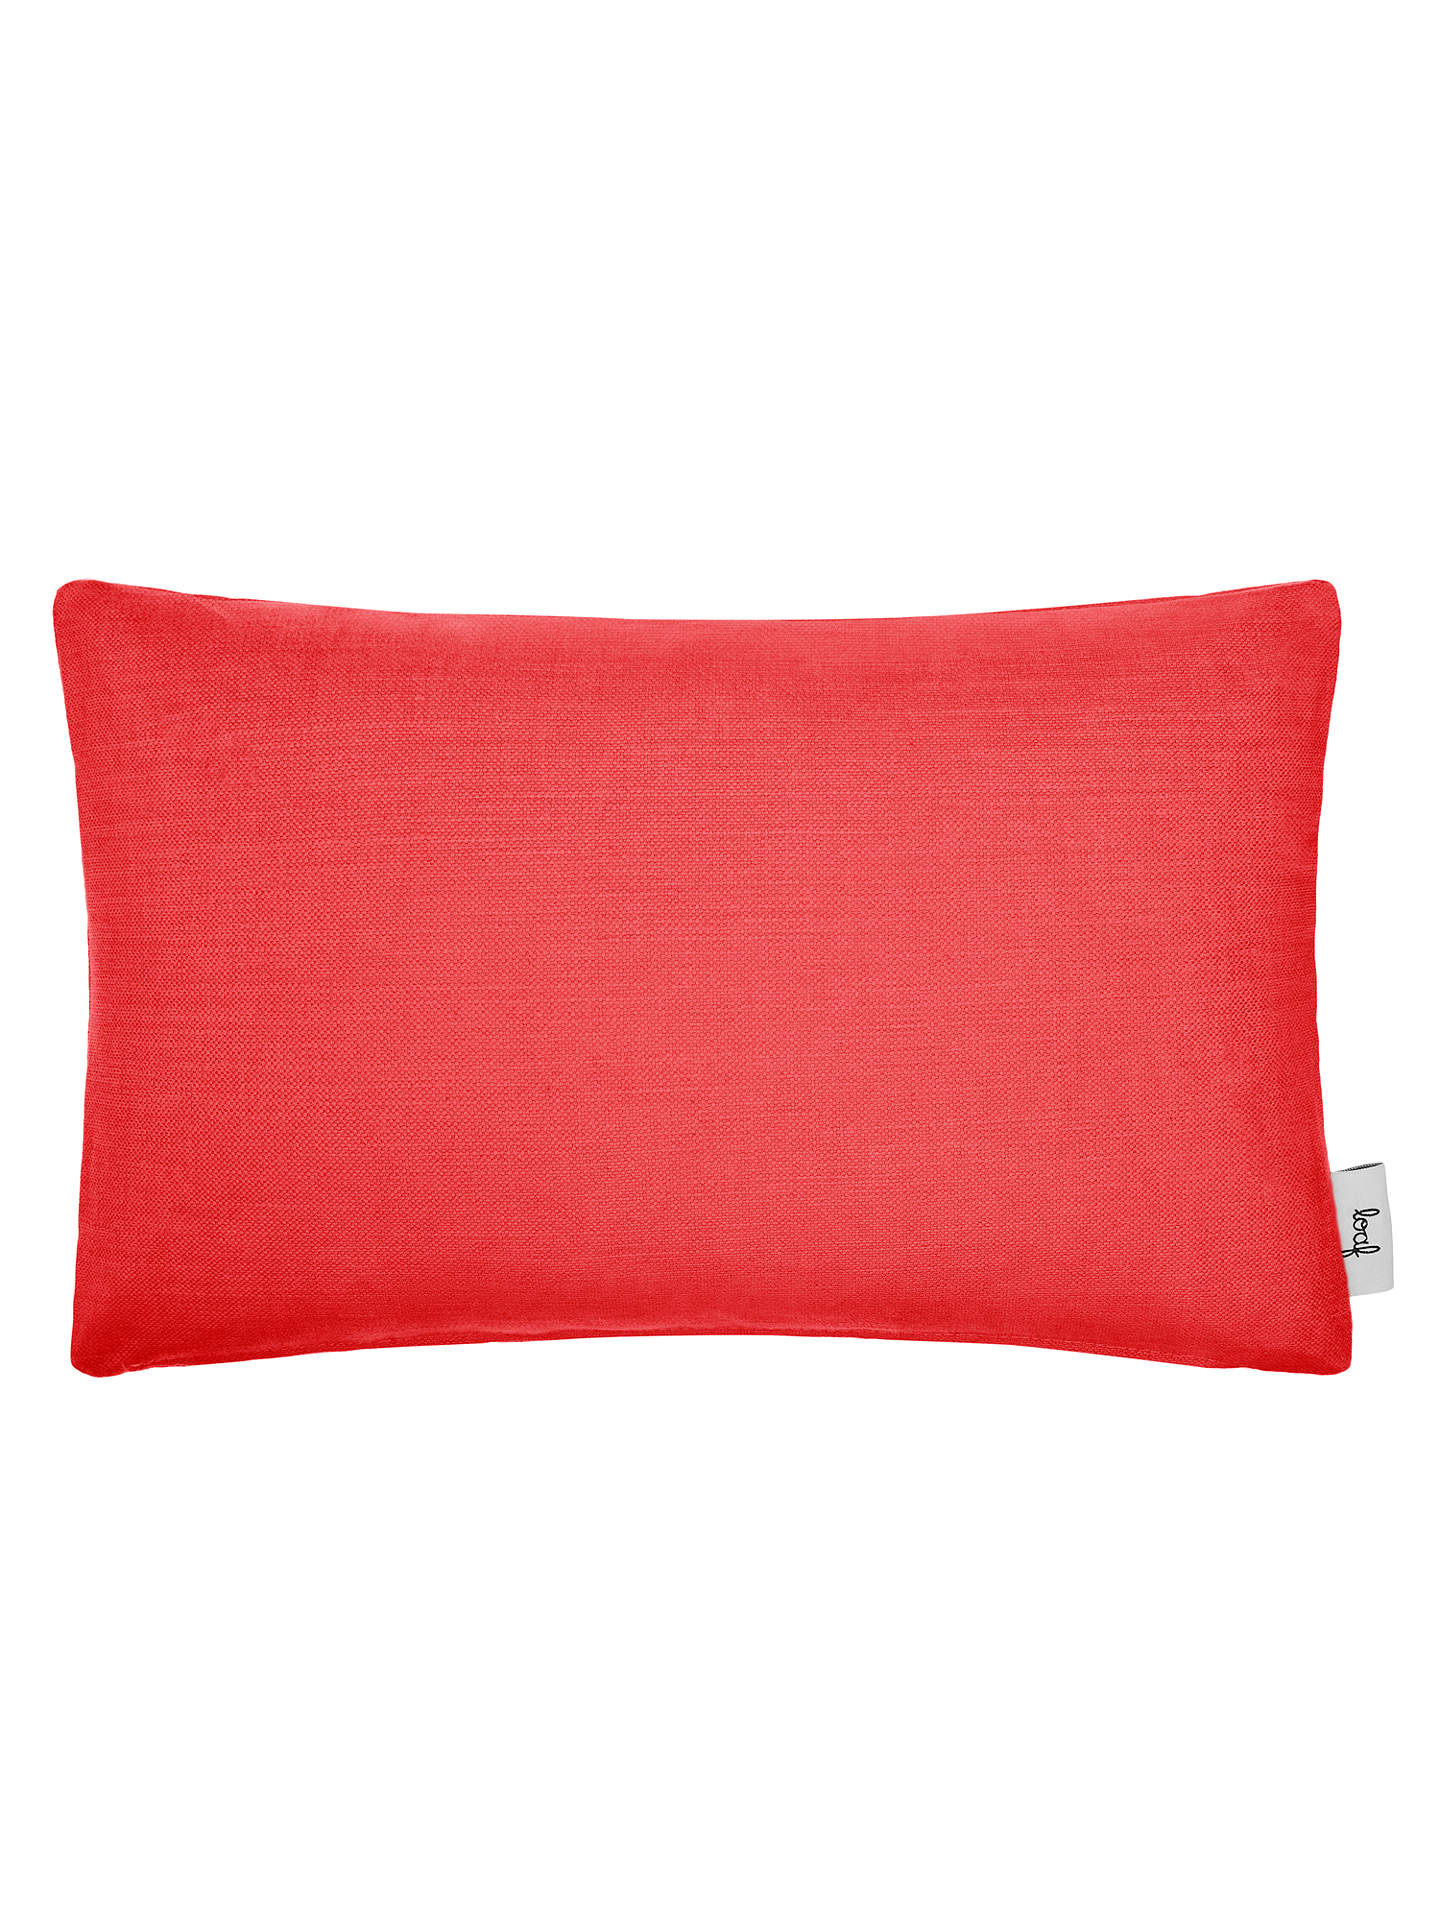 BuyRectangular Stretch Scatter Cushion by Loaf at John Lewis, Clever Linen Red Coral Online at johnlewis.com